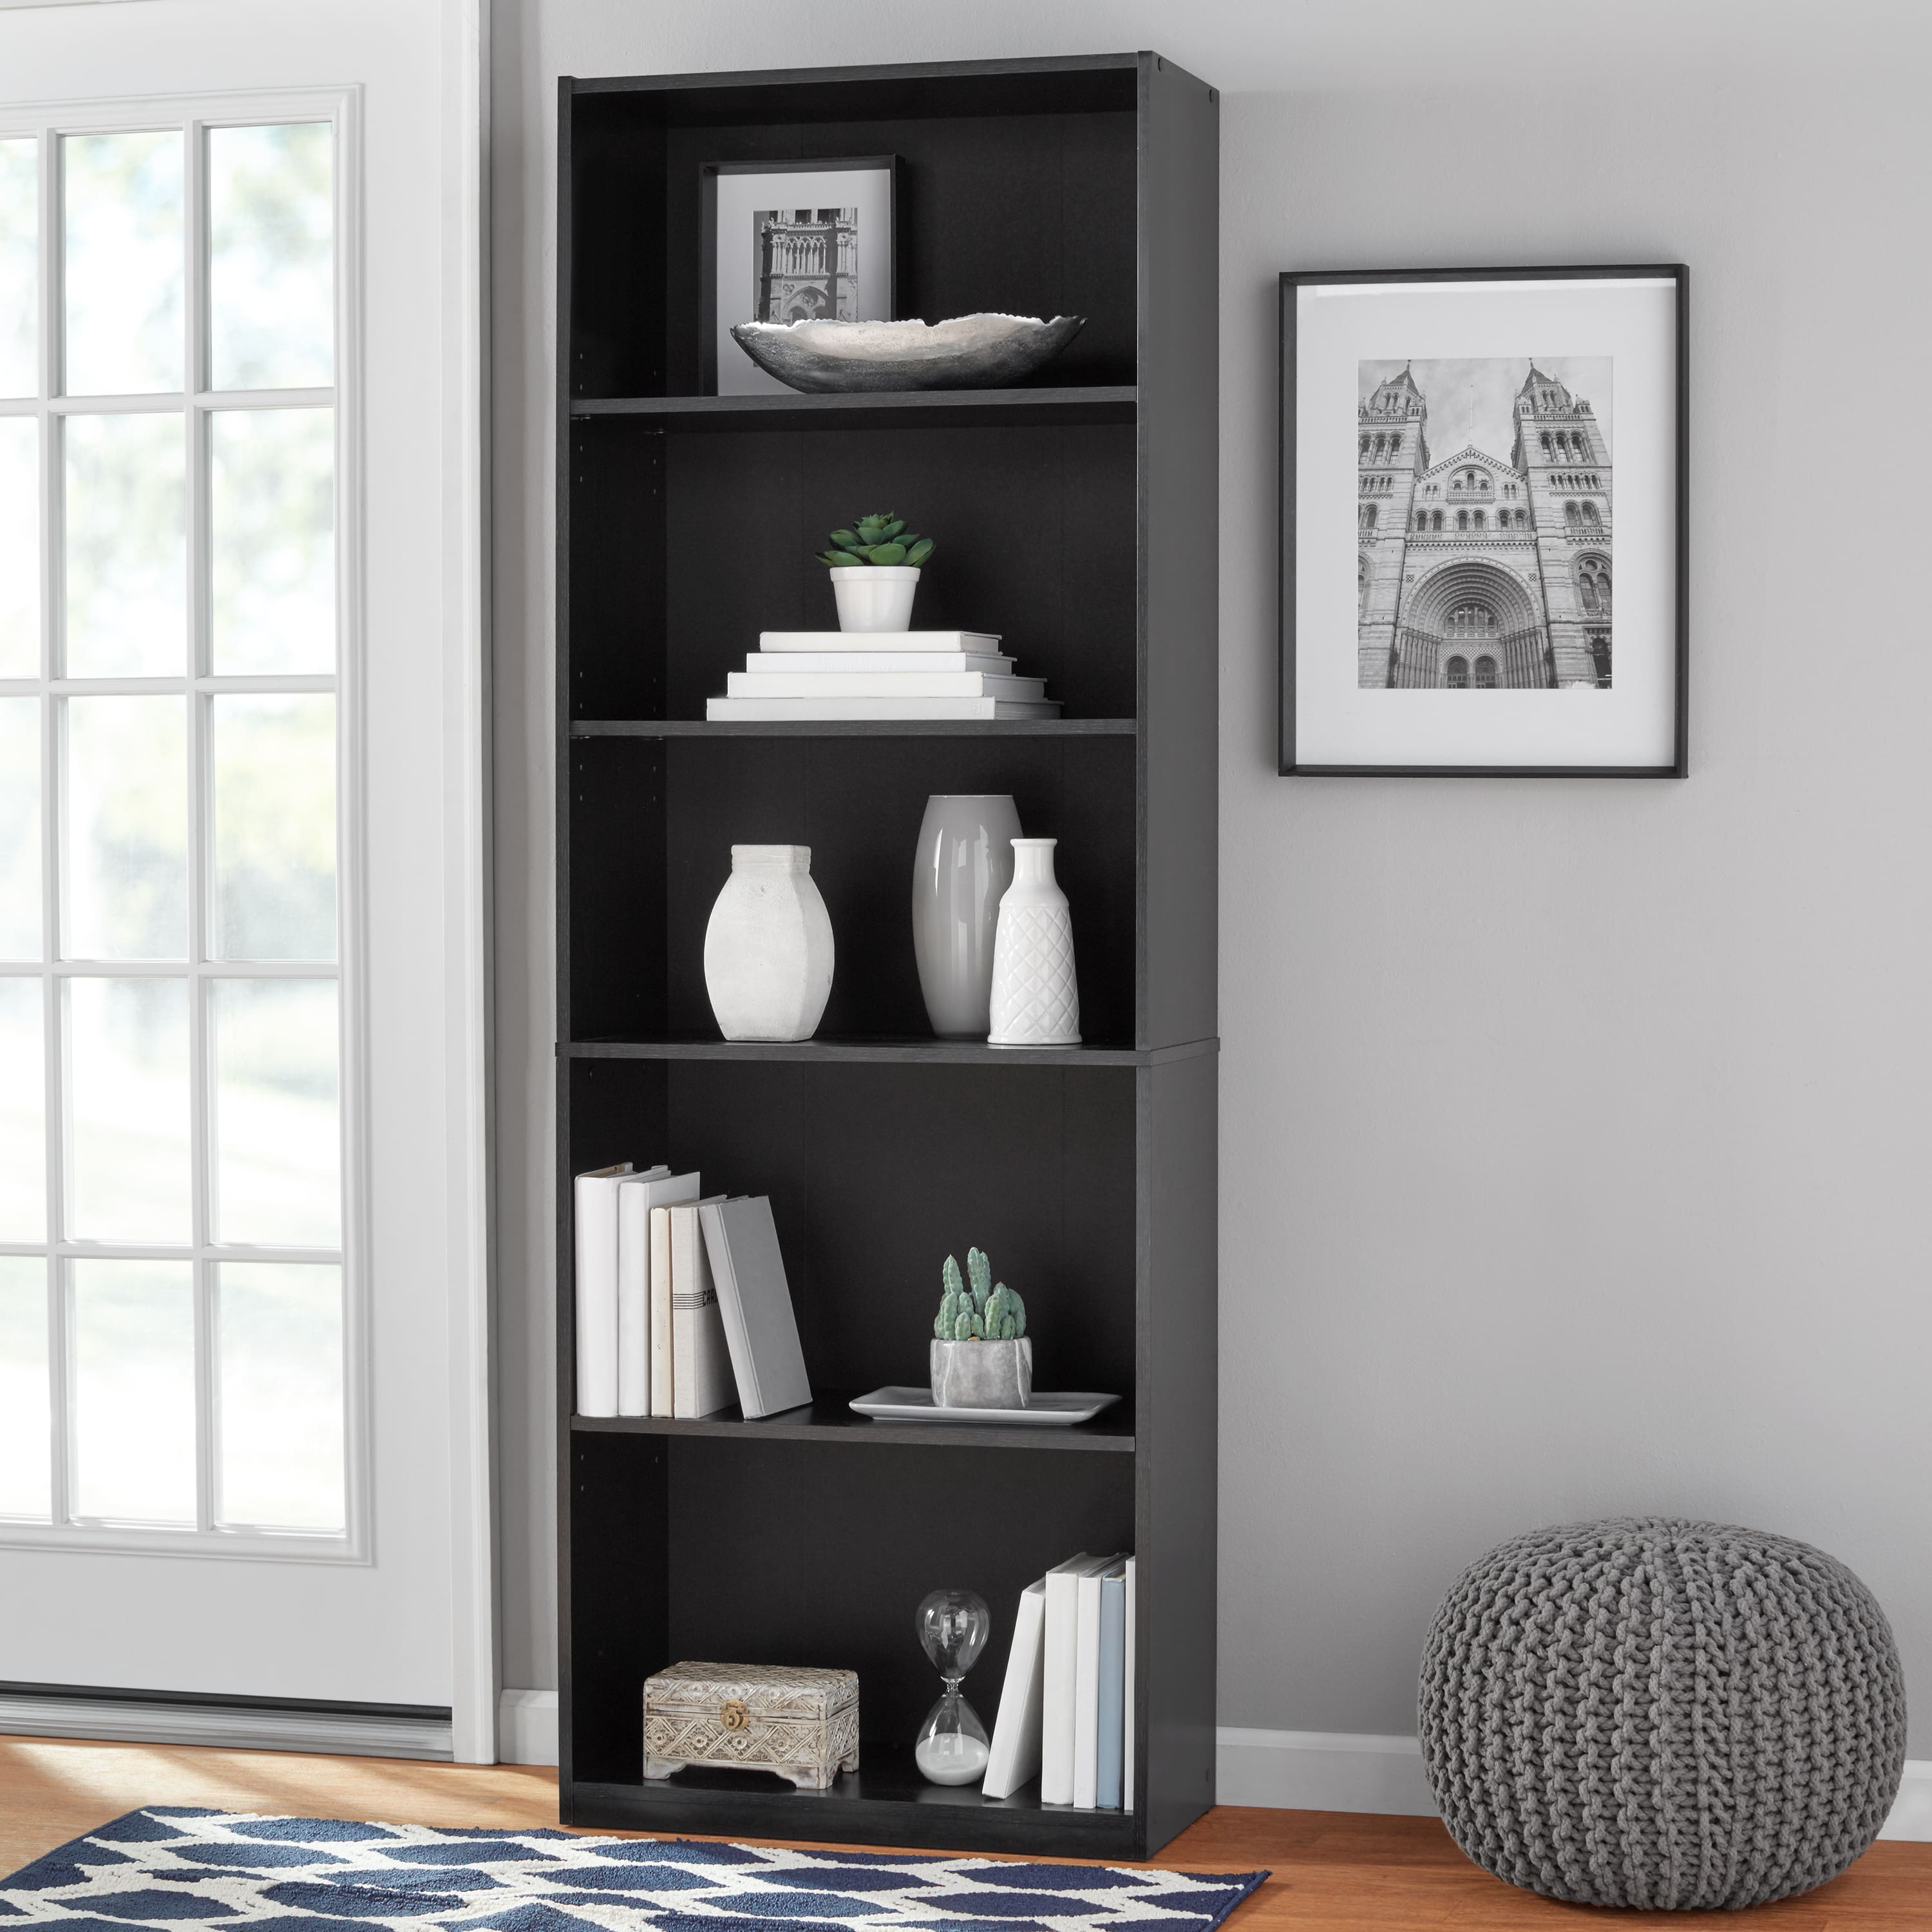 "71"" Mainstays 5 Shelf Bookcase (Black or White) $29.90 + Free Shipping w/ Walmart+ or Orders $35+"